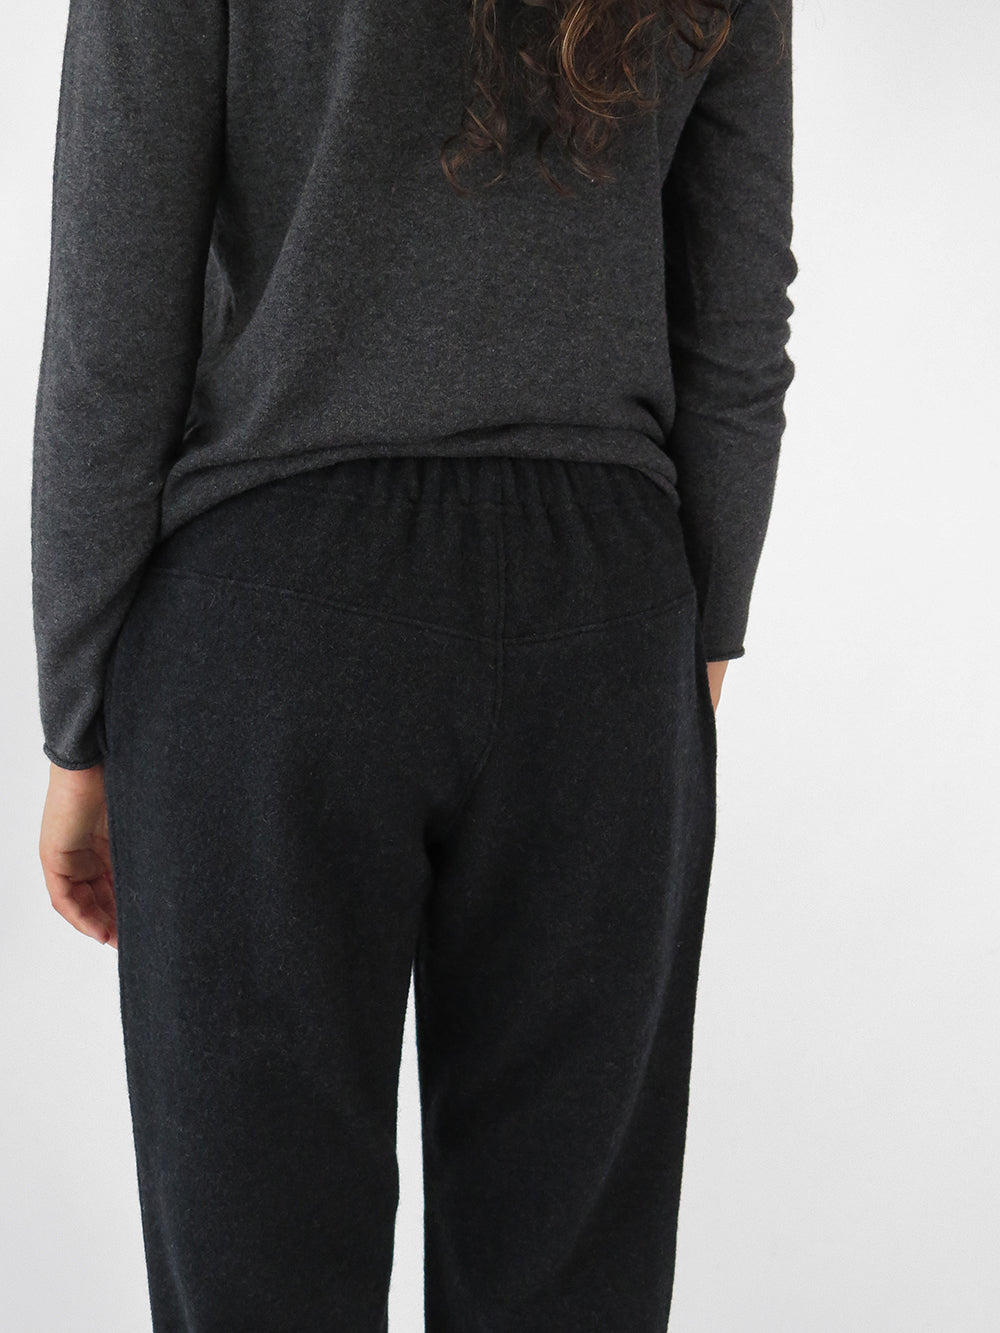 evam eva press pant in charcoal